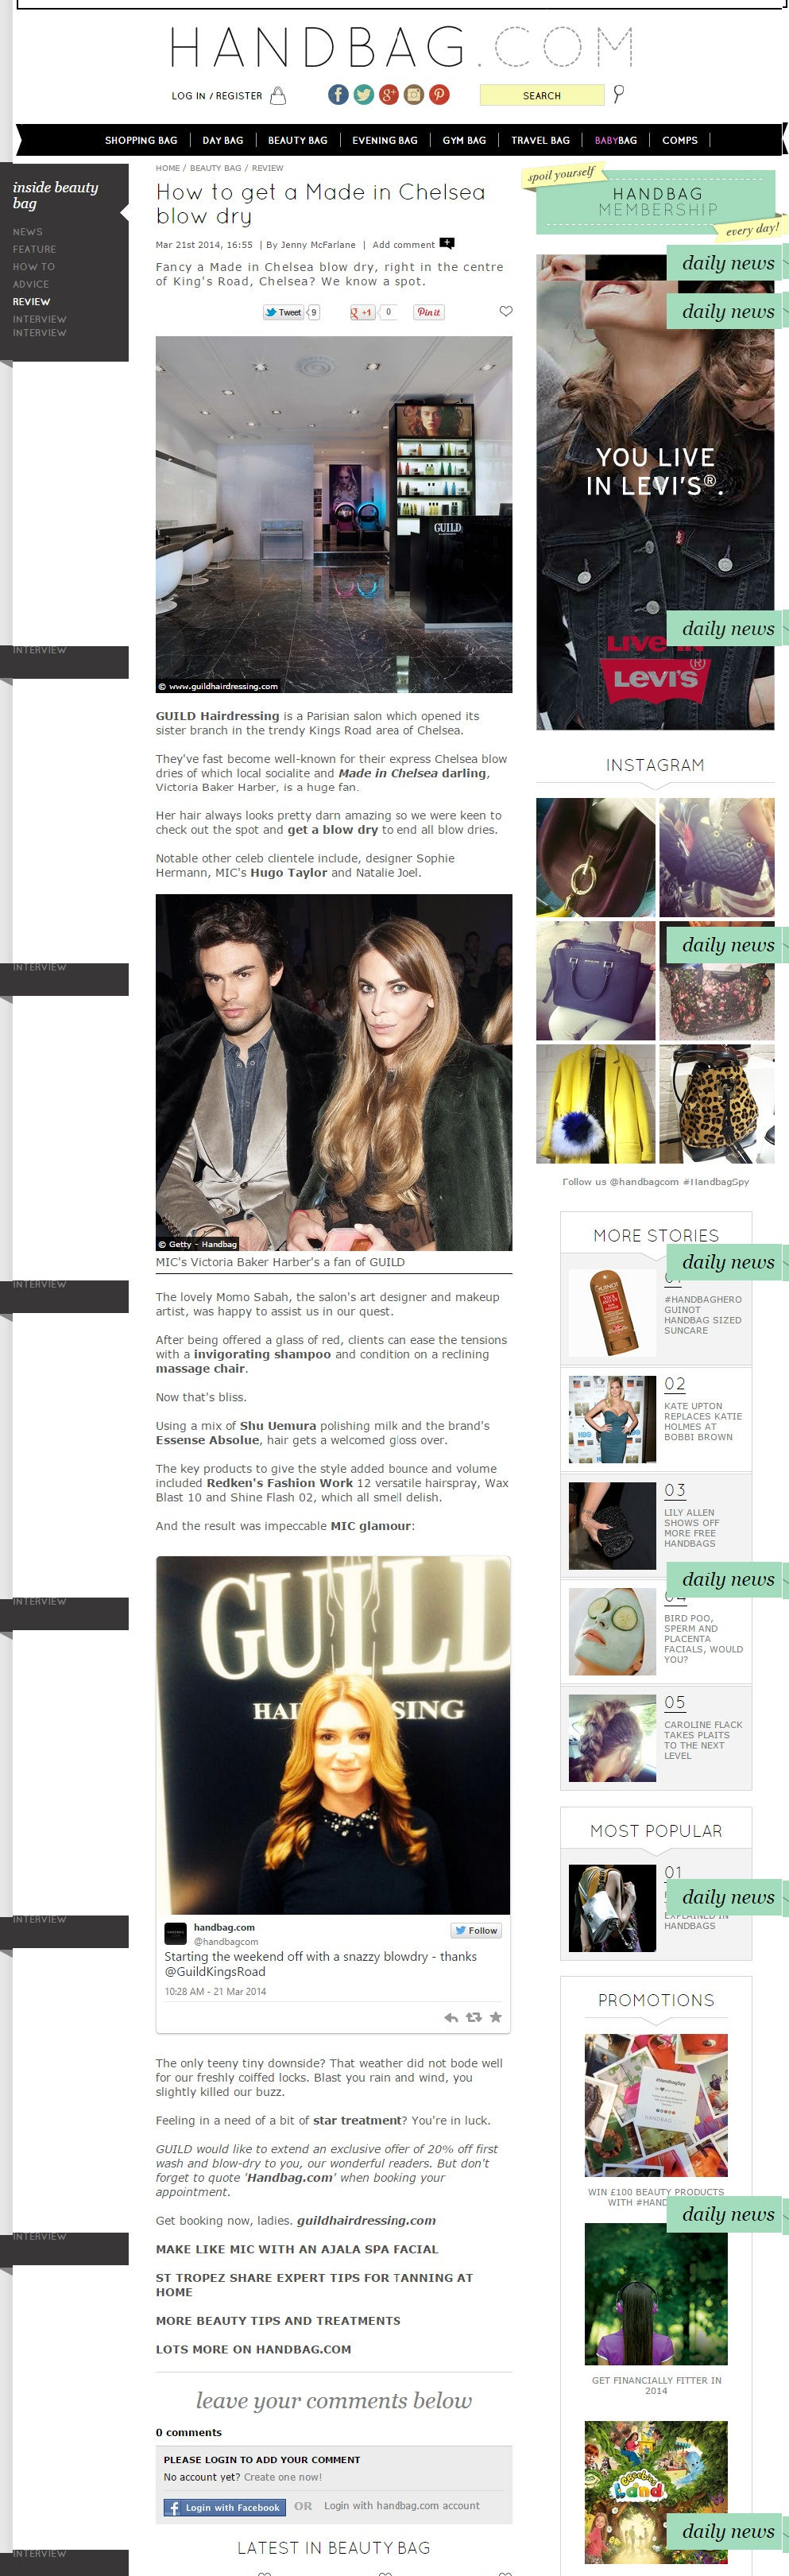 screencapture-www-handbag-com-beauty-bag-review-a559229-how-to-get-a-made-in-chelsea-blow-dry-html